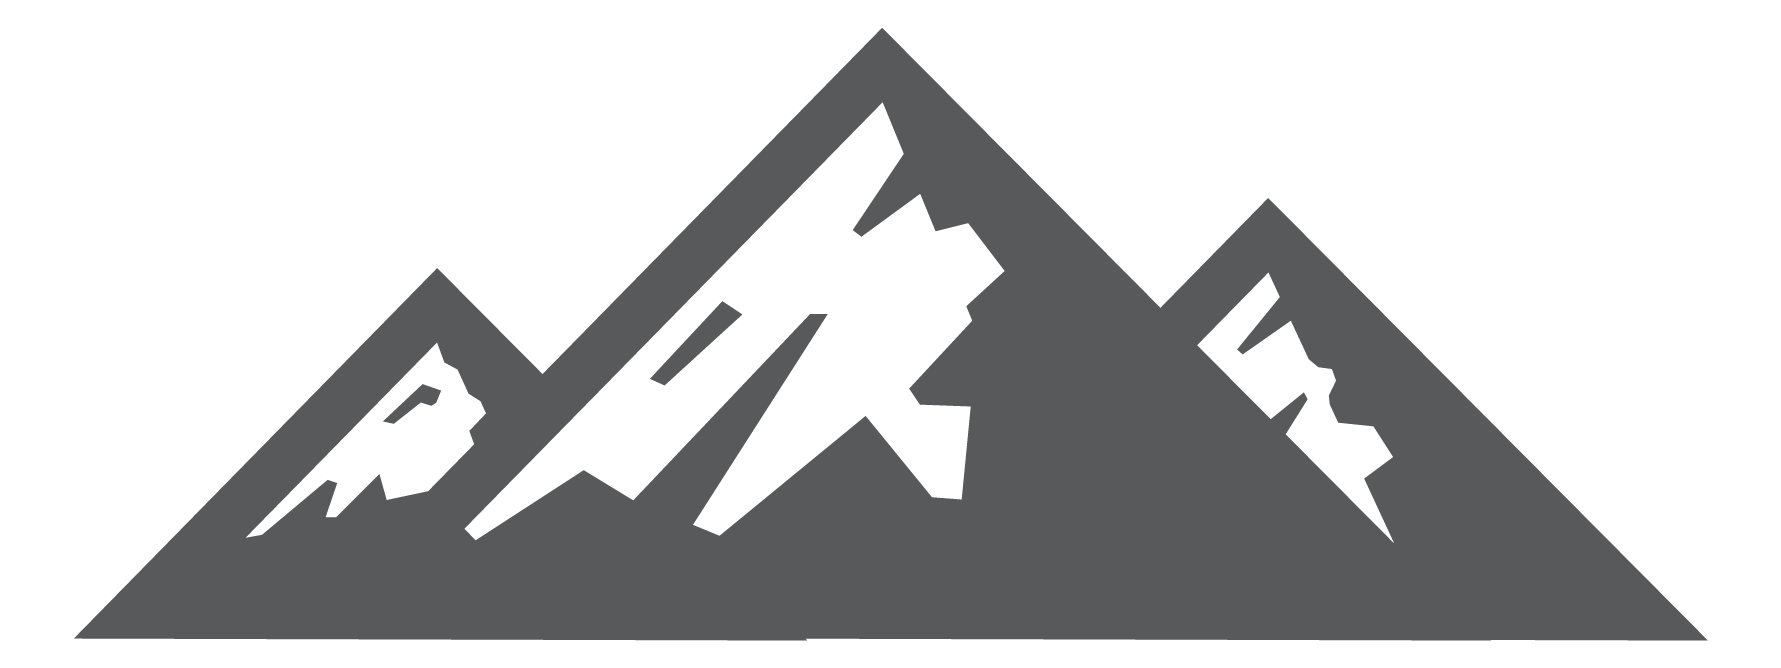 Mountain PNG